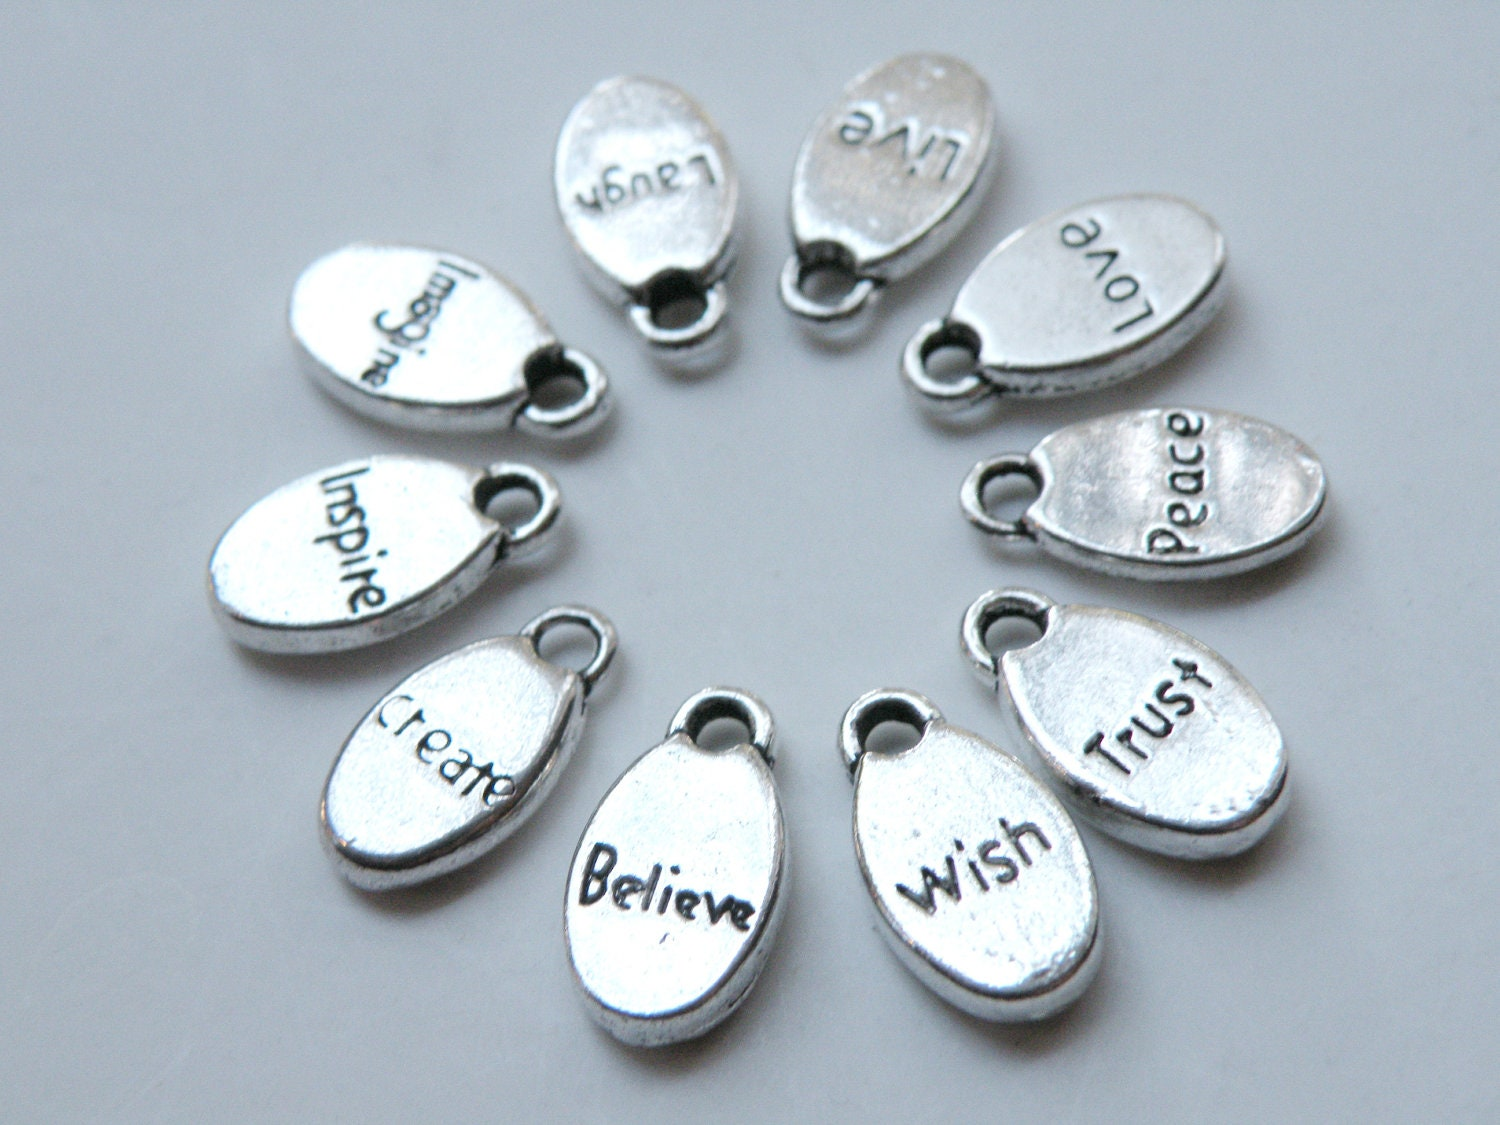 10 inspirational words oval charms affirmation messages